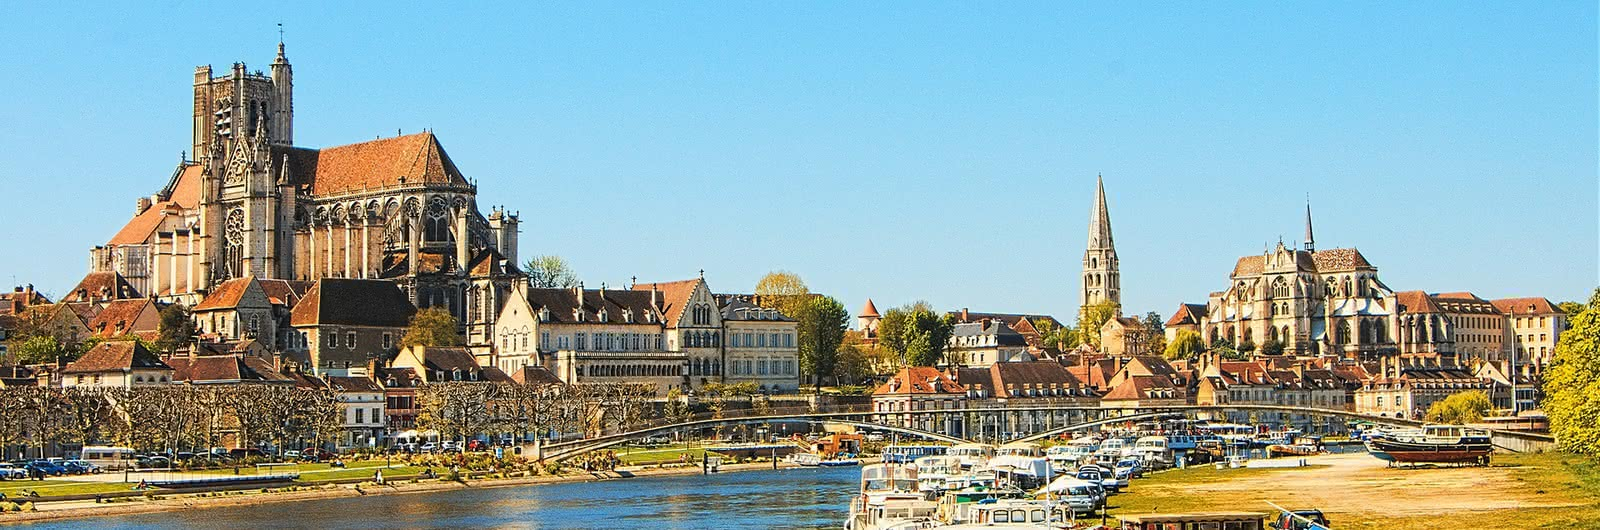 auxerre city header